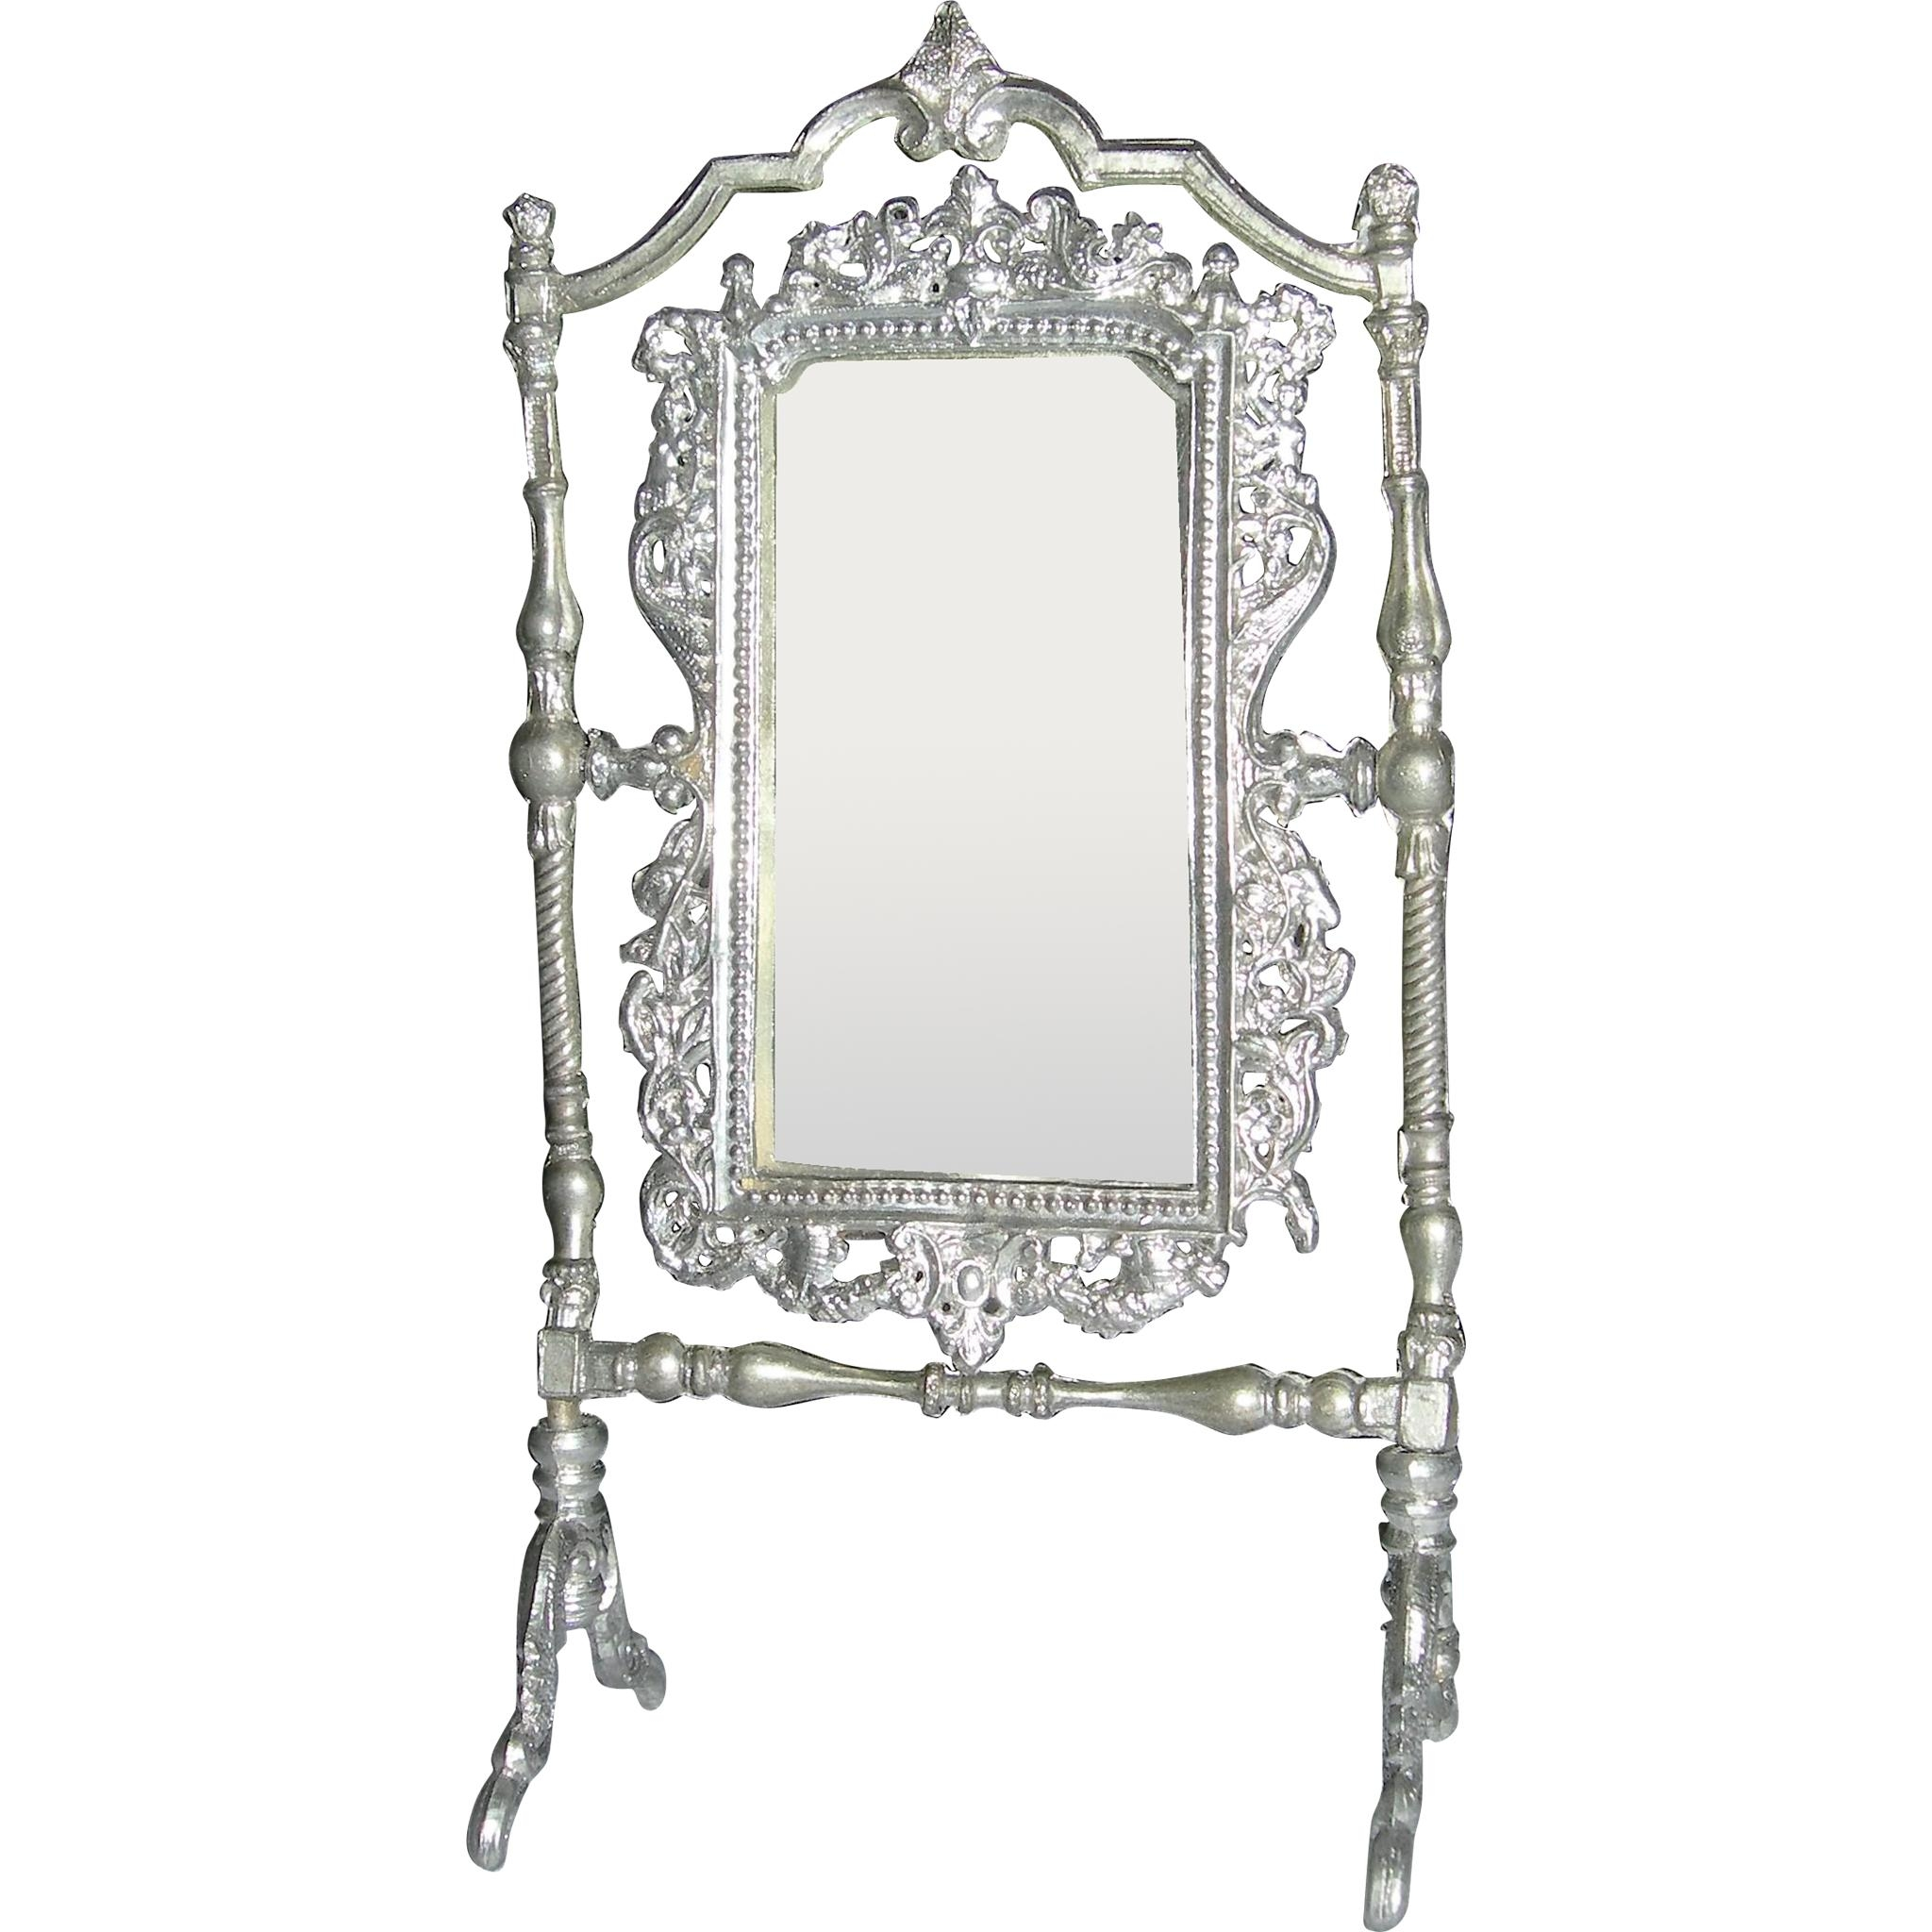 "4"" Soft Metal Ornate Mirror Silver Or Pewter From 2Bethsdolls On In Pewter Ornate Mirror (Image 2 of 20)"